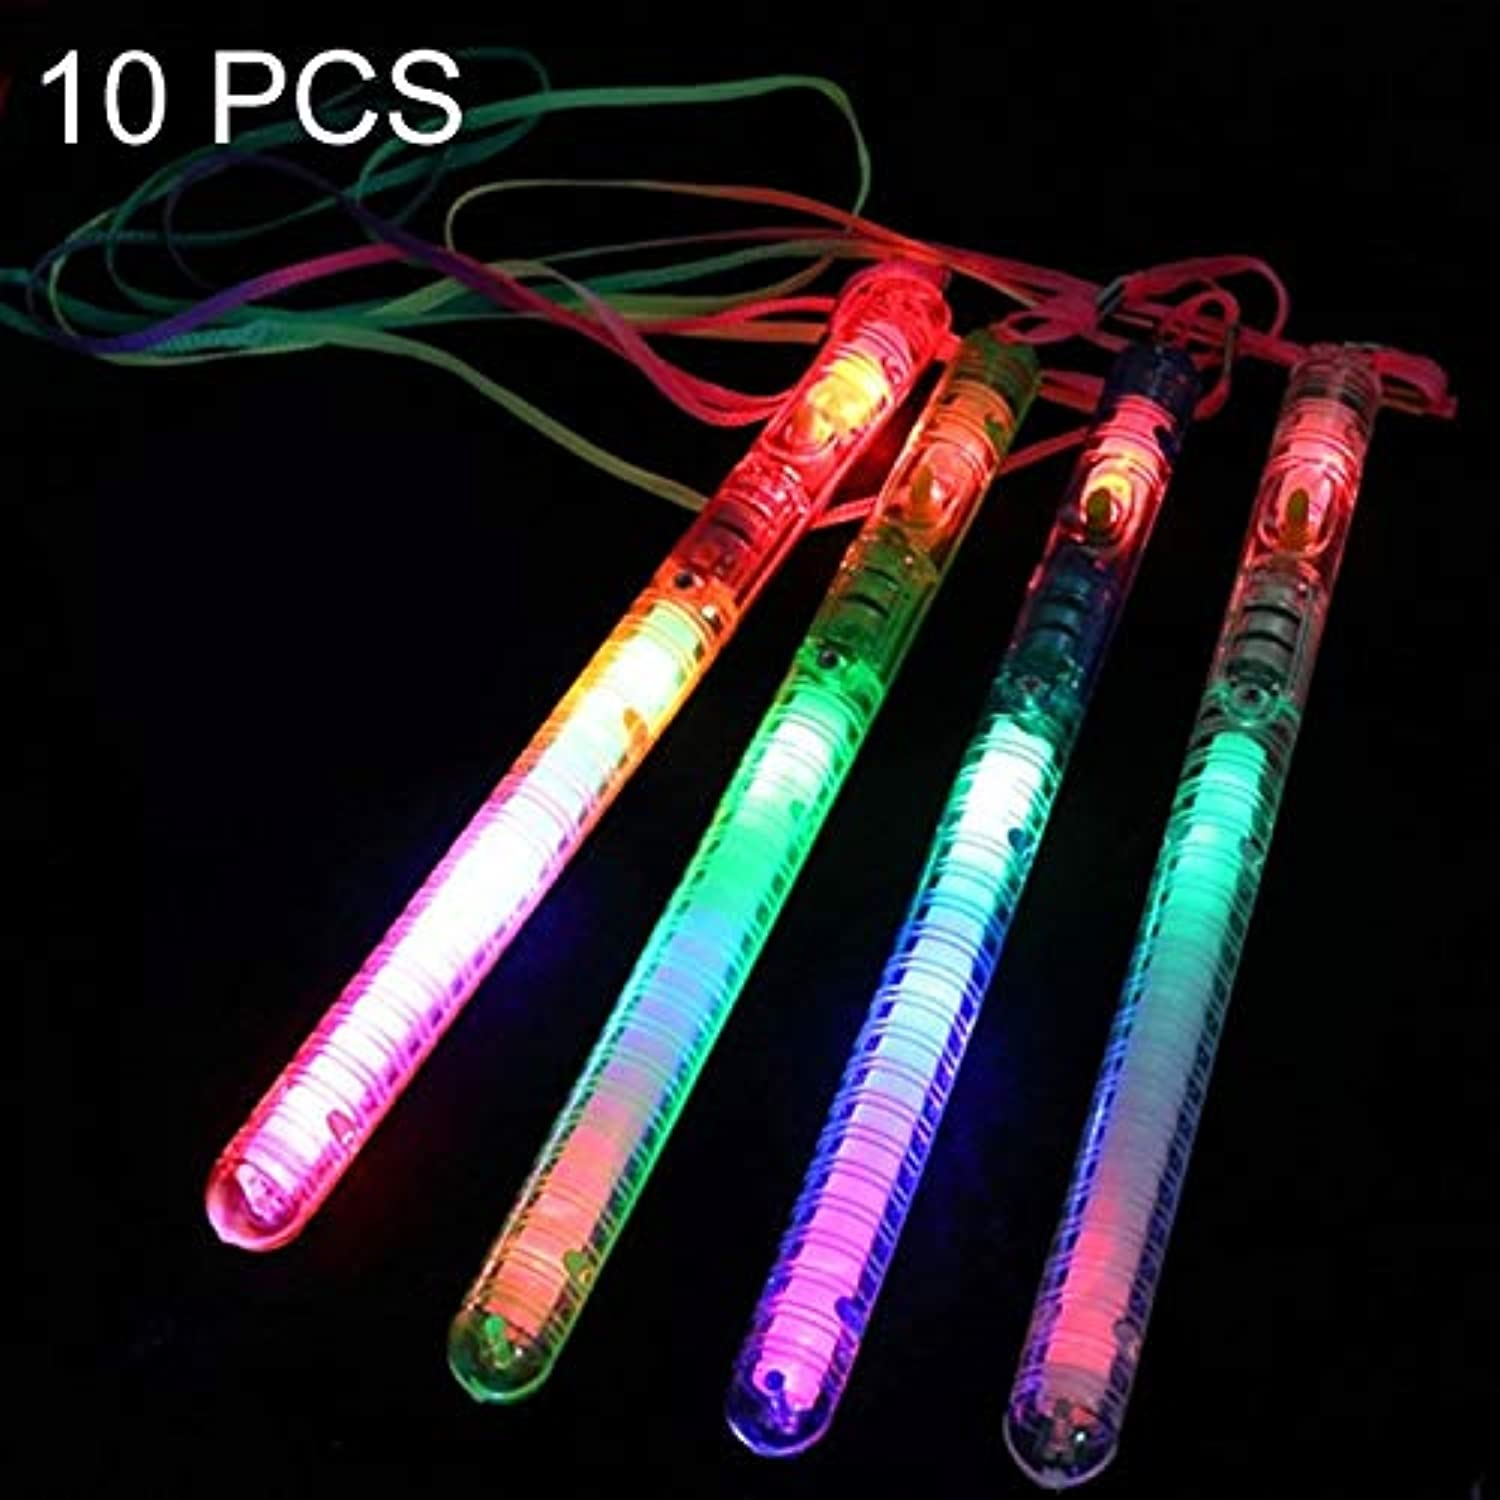 Simple LED color Flash Stick Glow Stick Three Gears Adjustment with Rope, Random color Delivery 10 PCS Beautiful